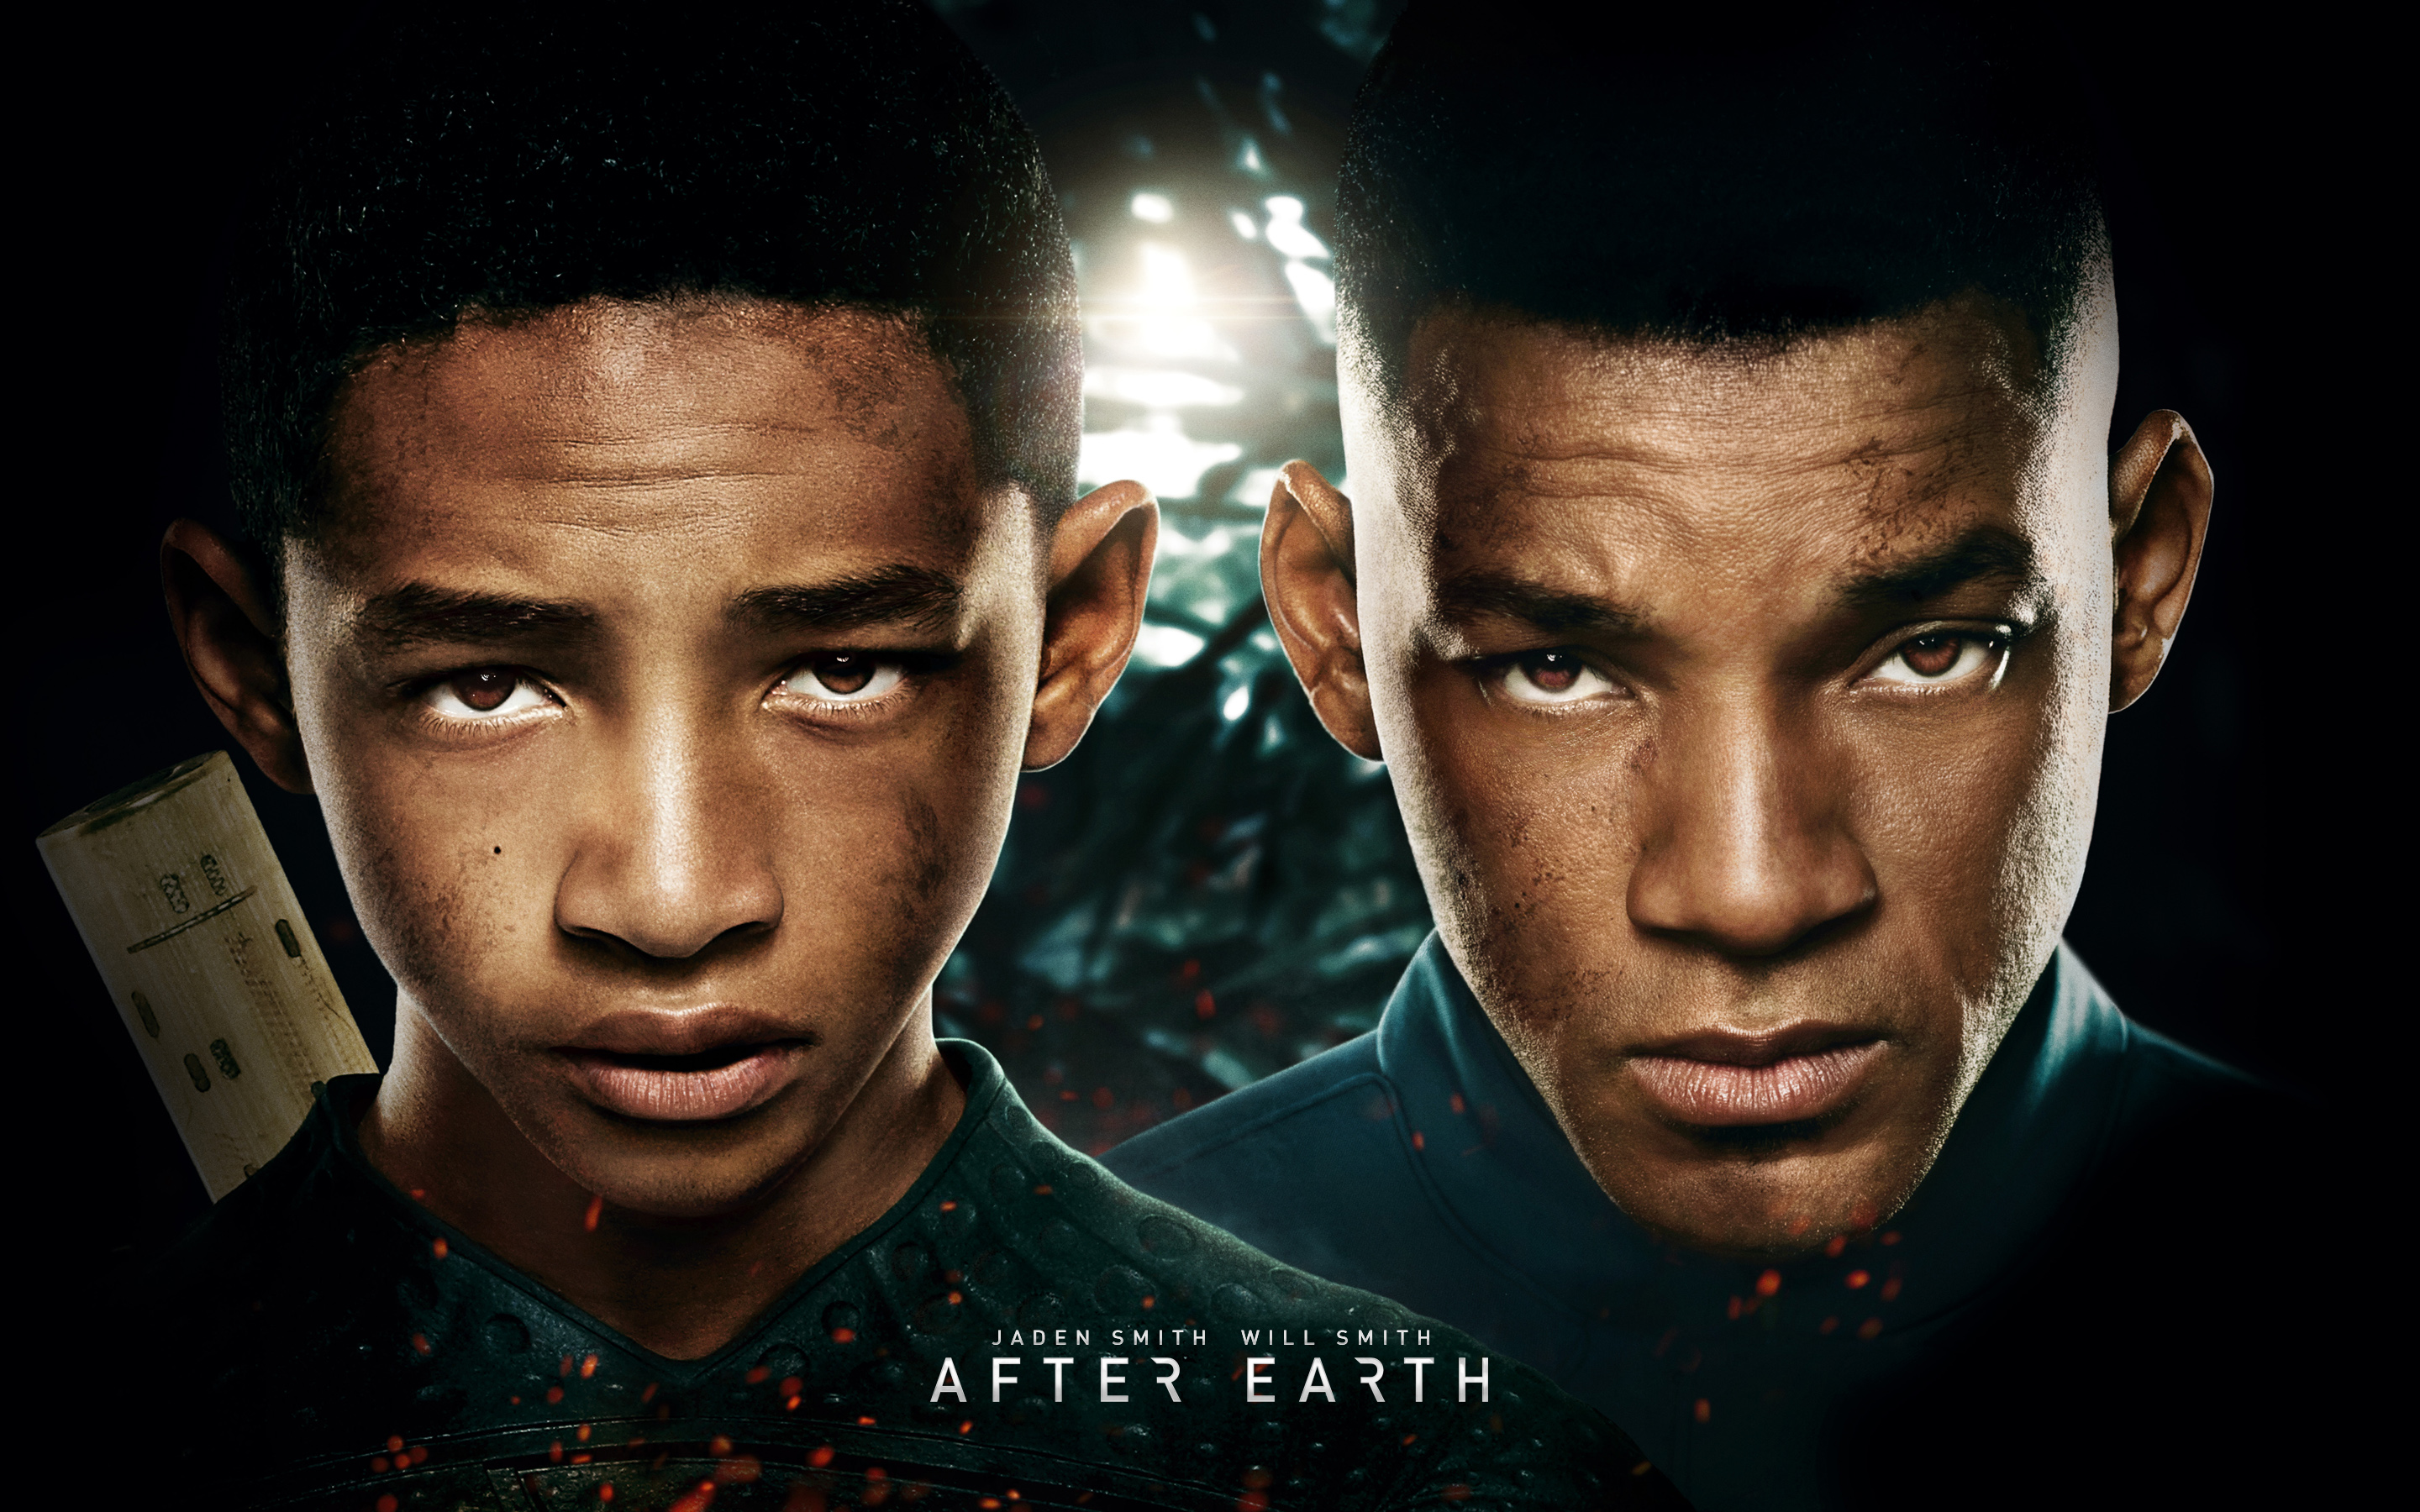 As the Associated Press tells us, Jaden came out ahead of his father, winning worst actor, and After Earth and Movie 43 tied for the most Razzie awards.